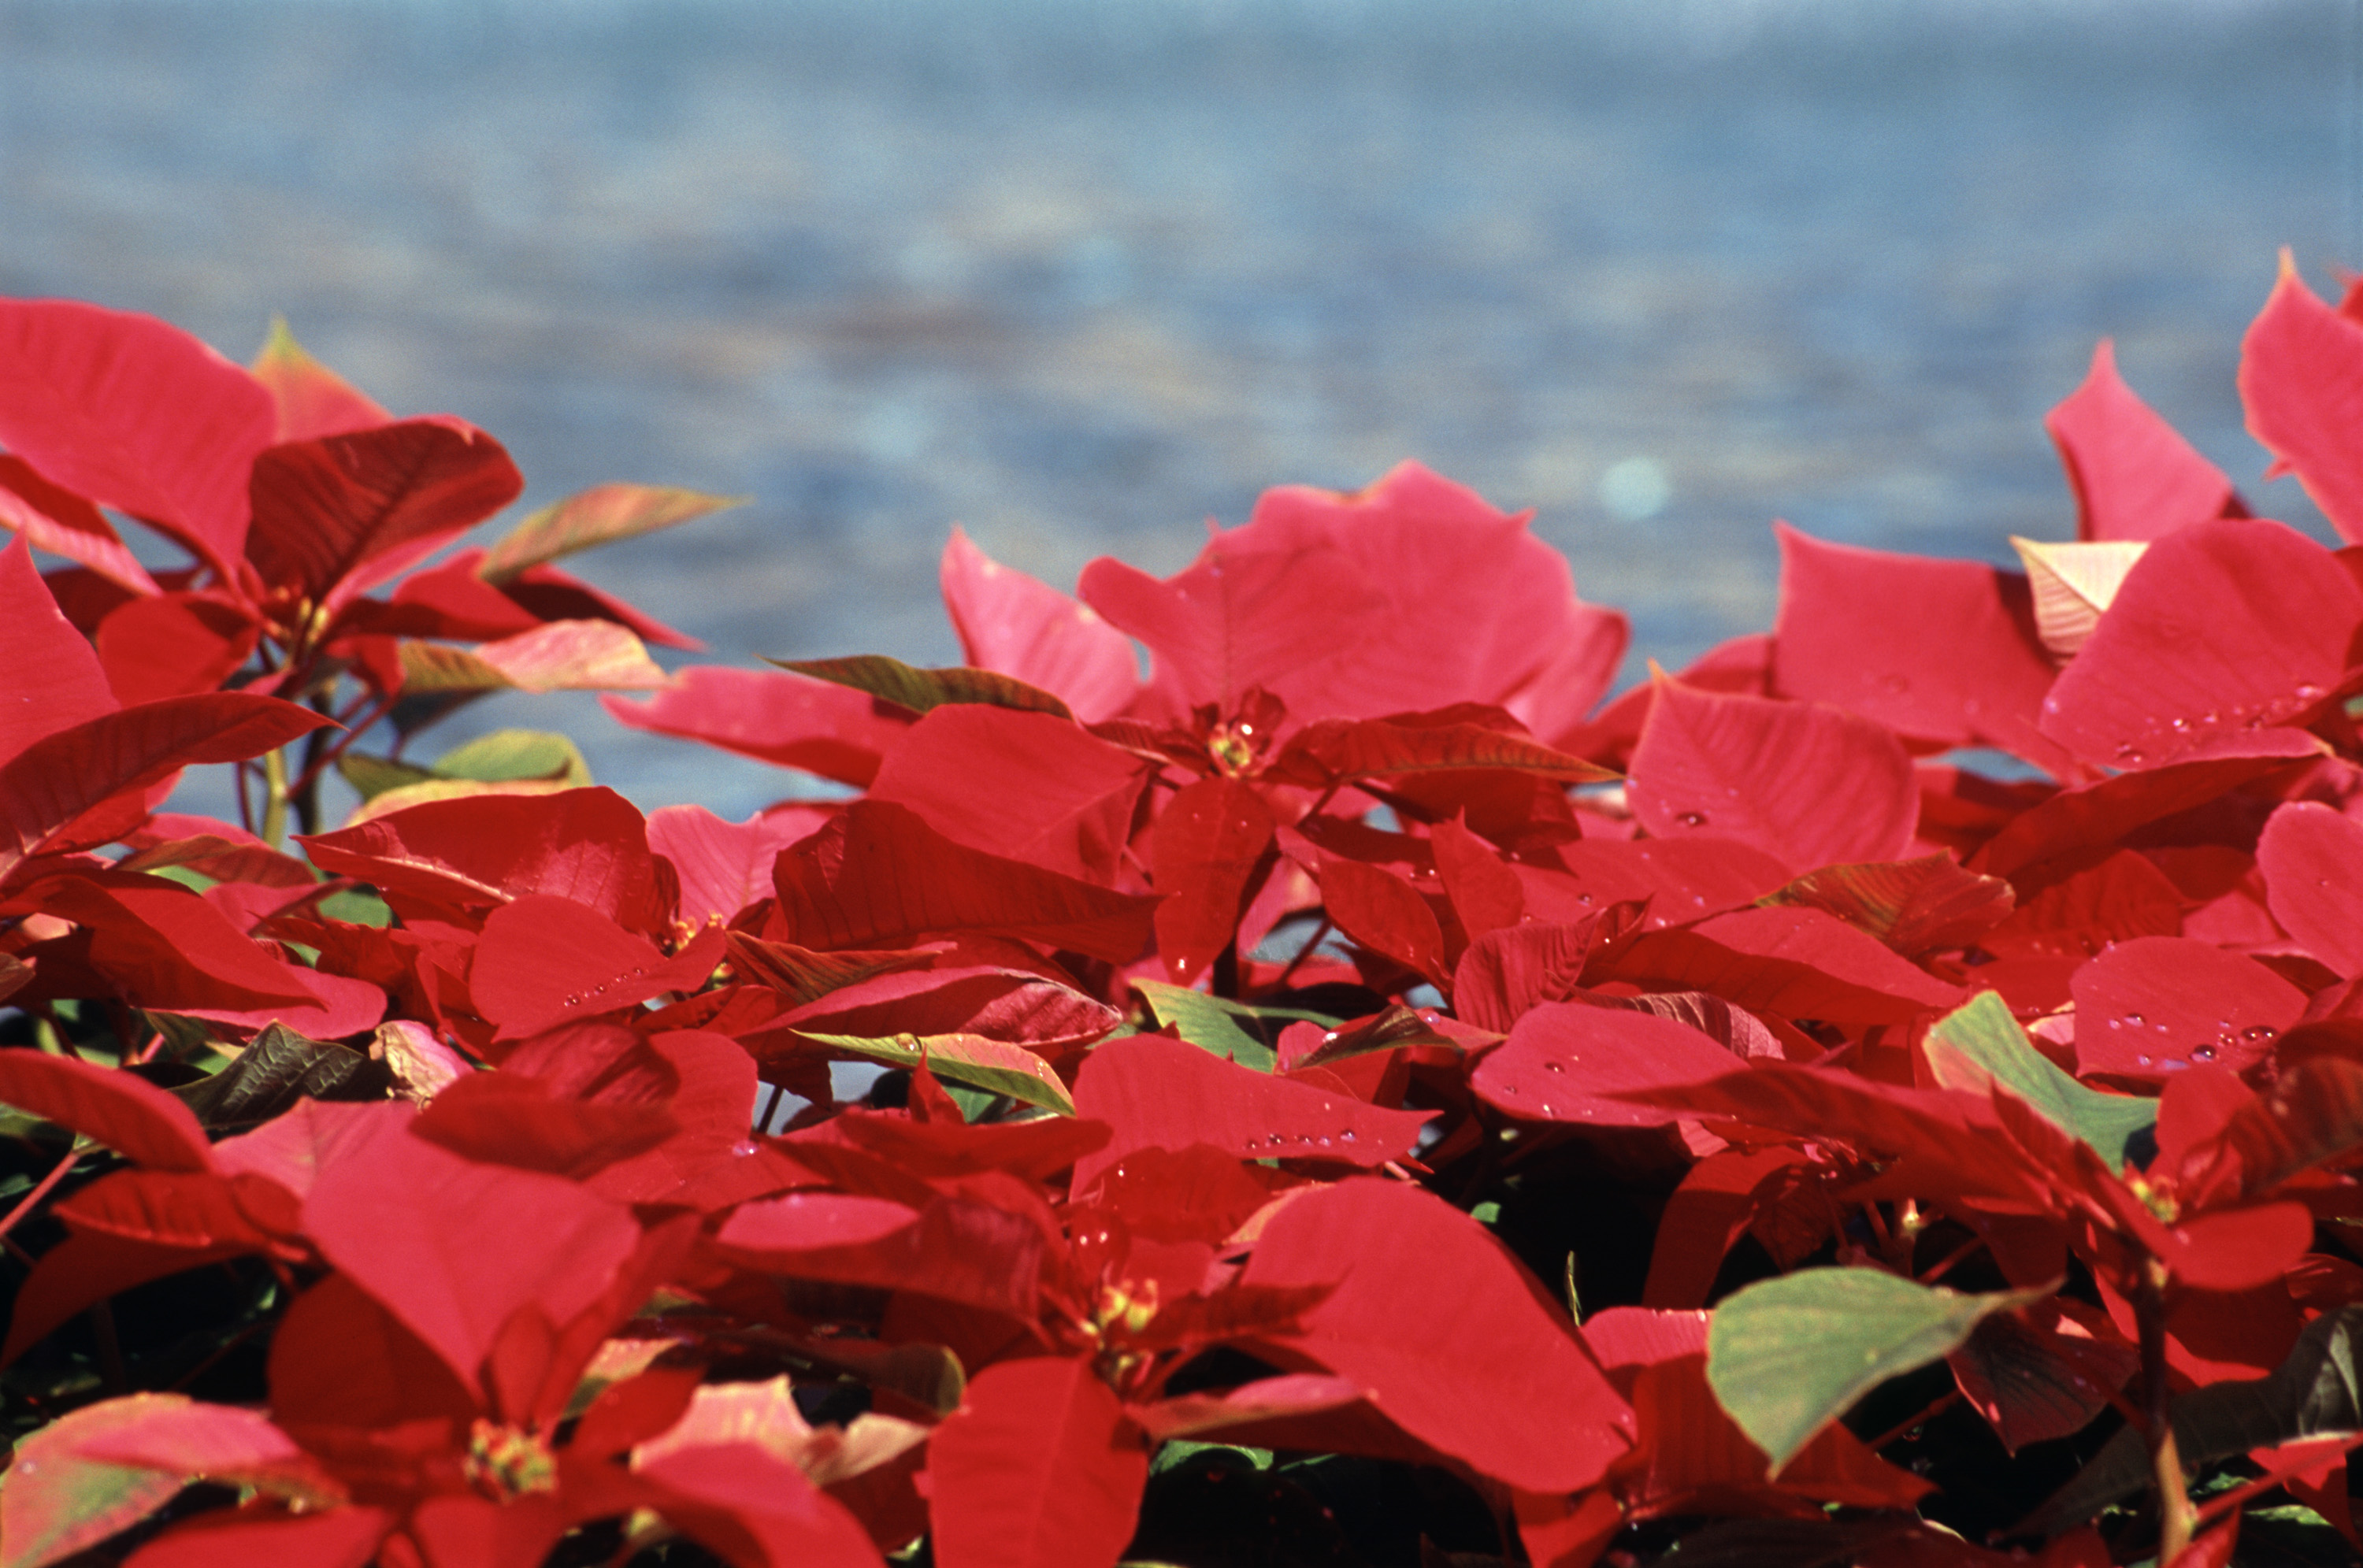 a colorful display of poinsettia plants with their distinctive red winter leaves